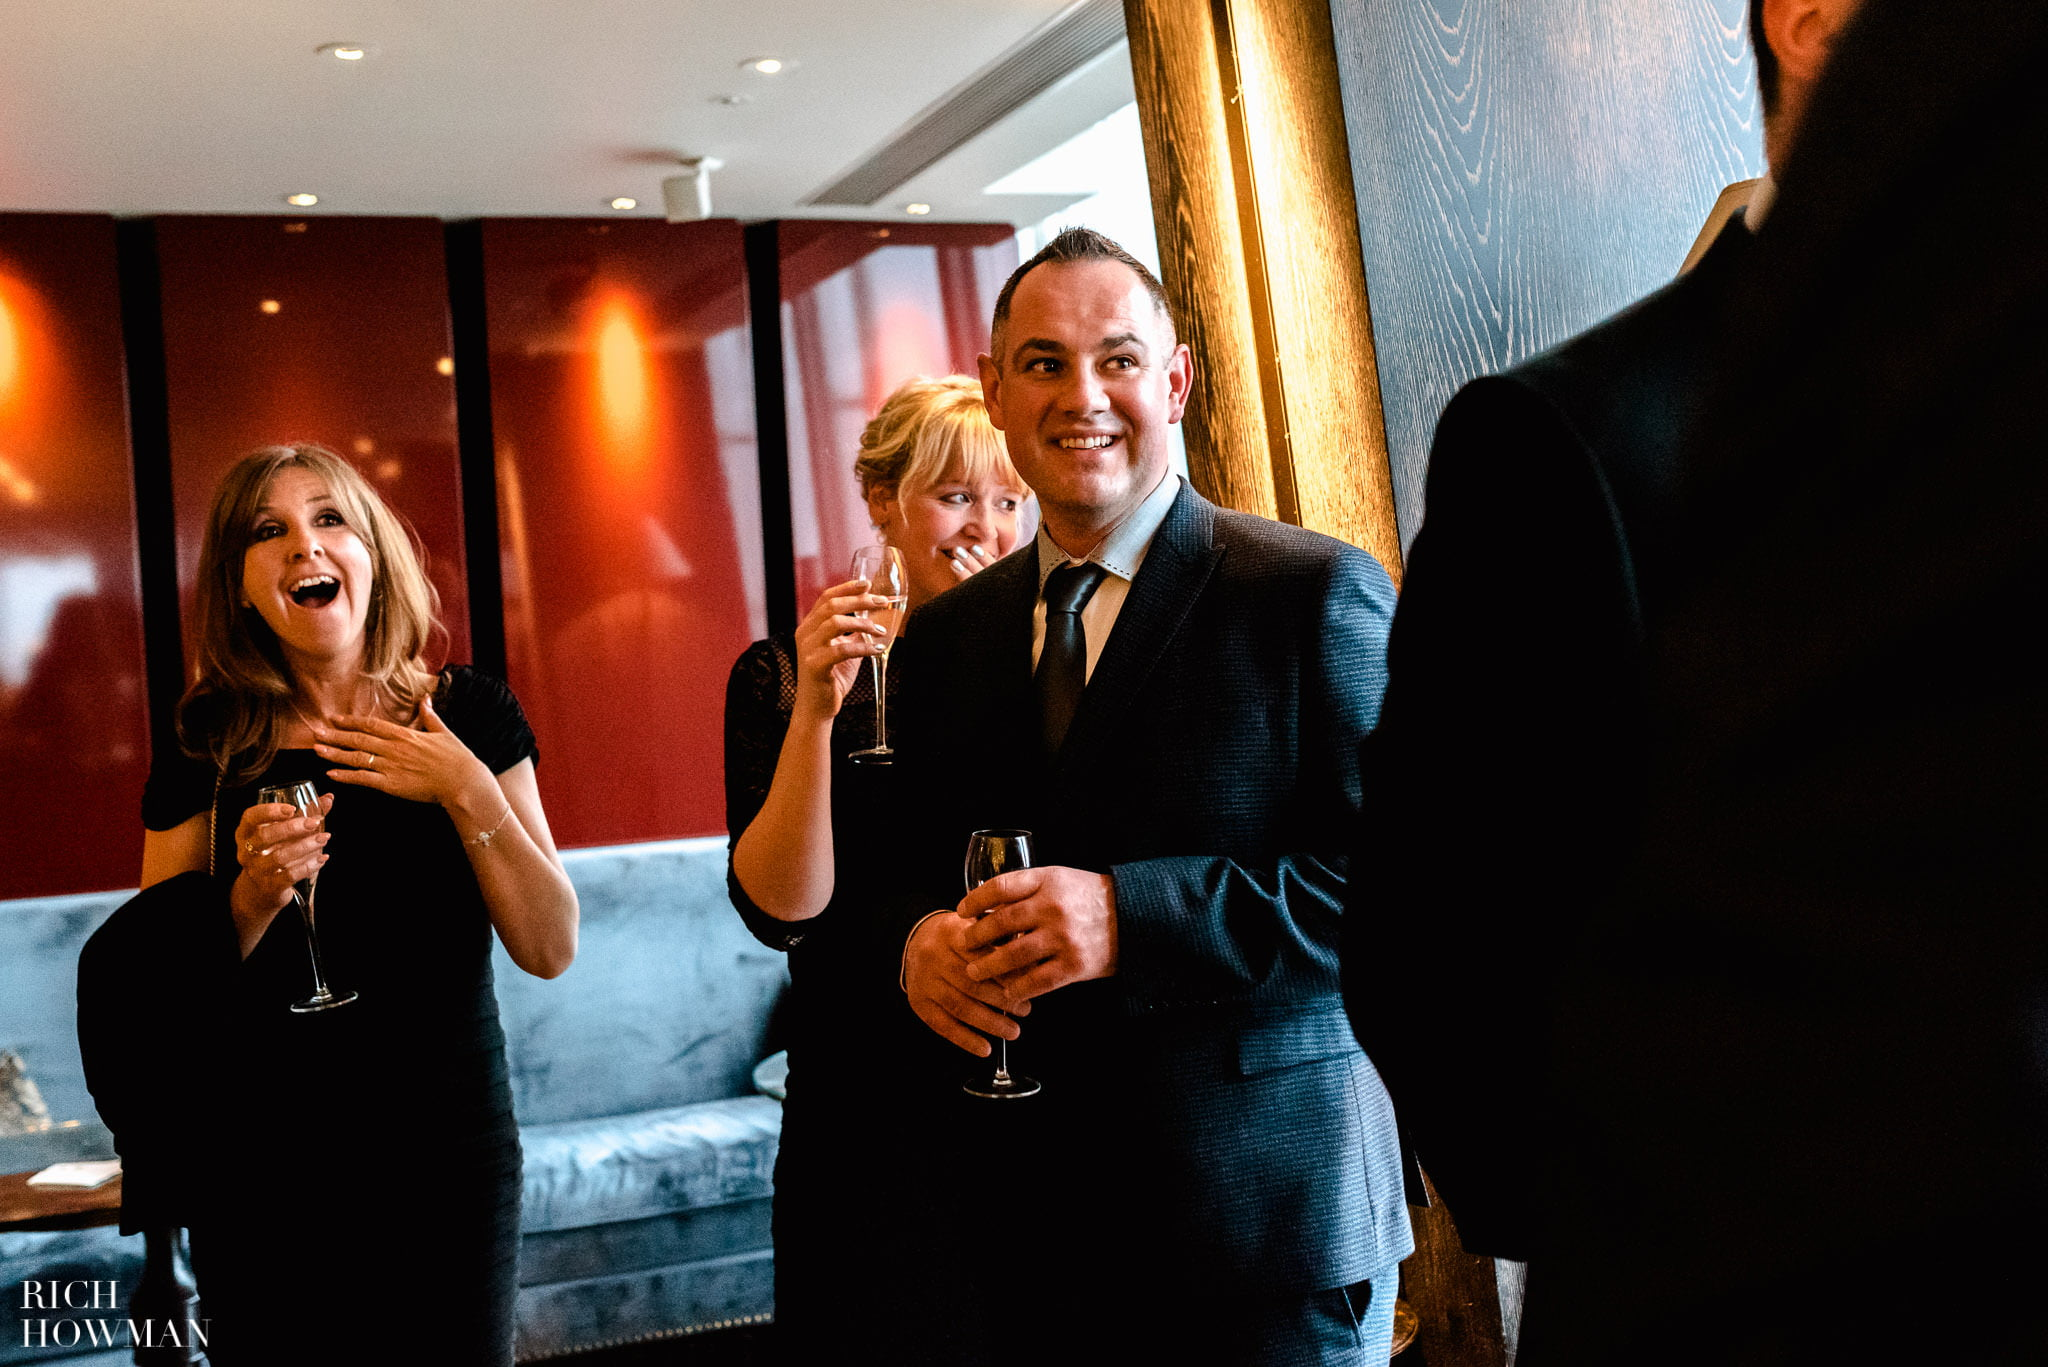 Wedding at The Shard, London | The Shard Wedding Photographer Rich Howman 4